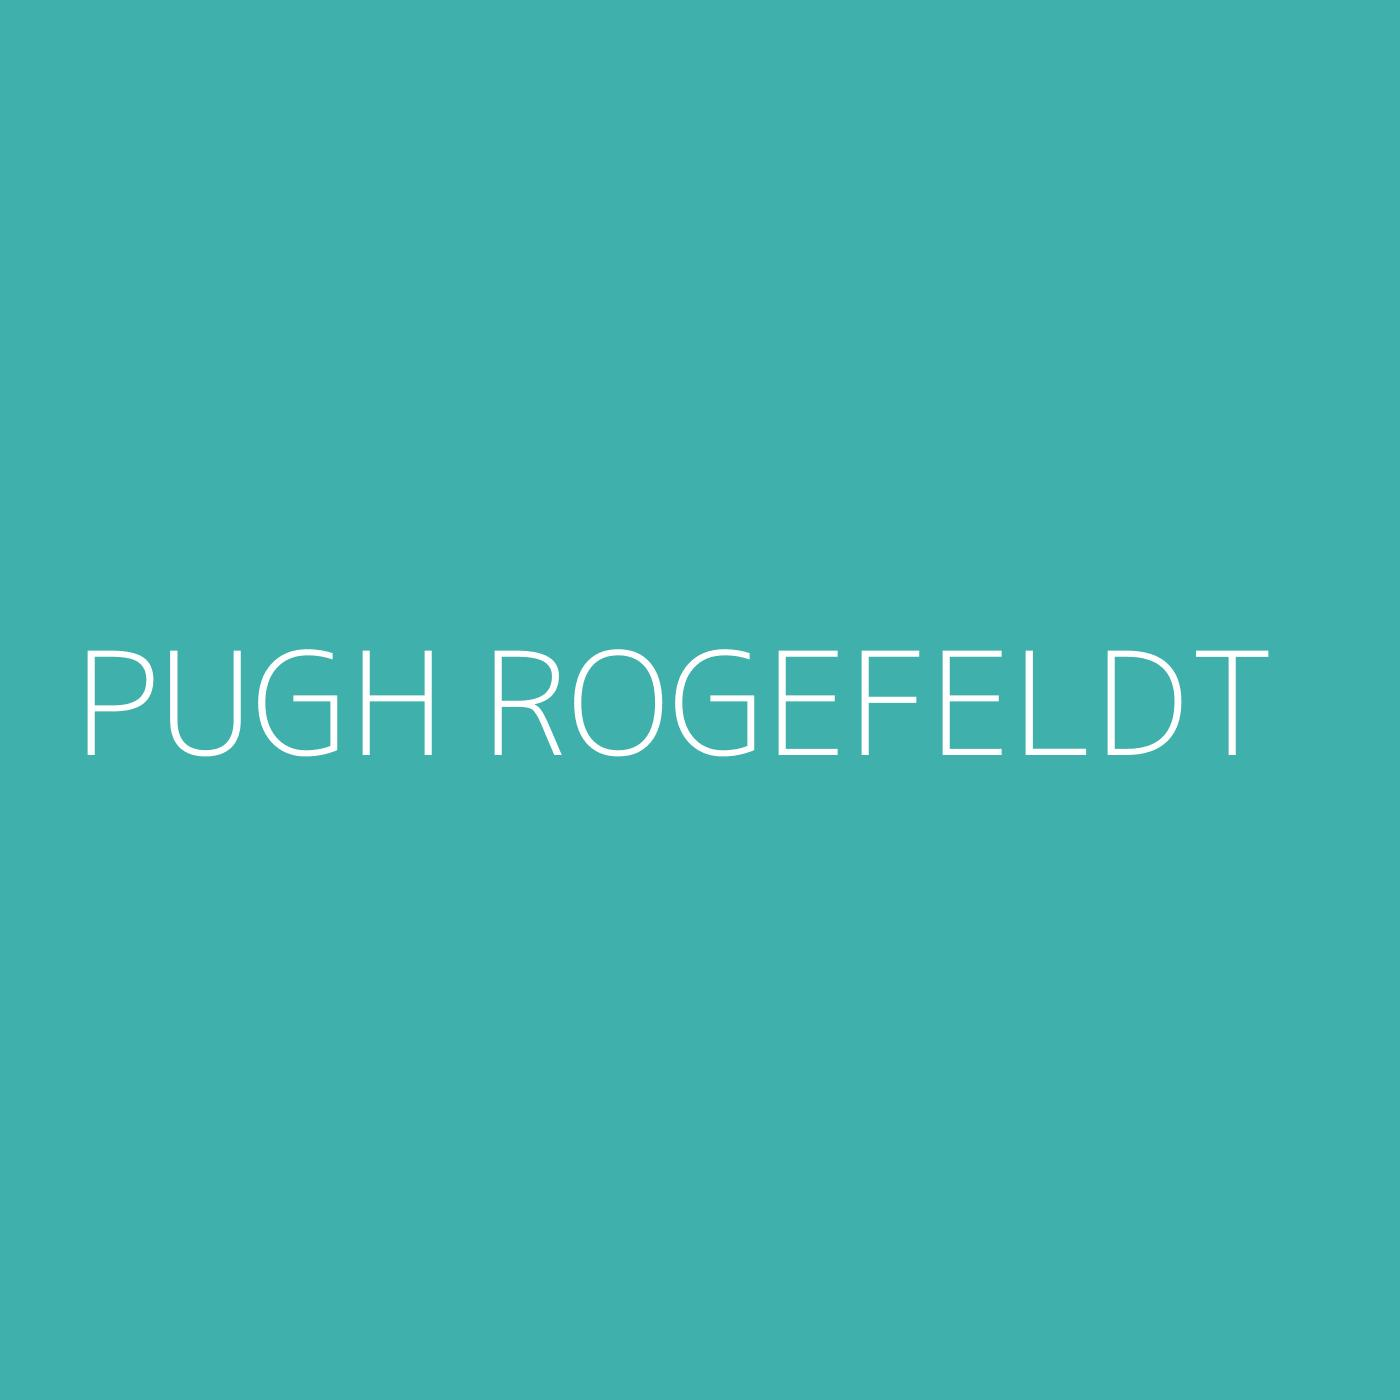 Pugh Rogefeldt Playlist Artwork